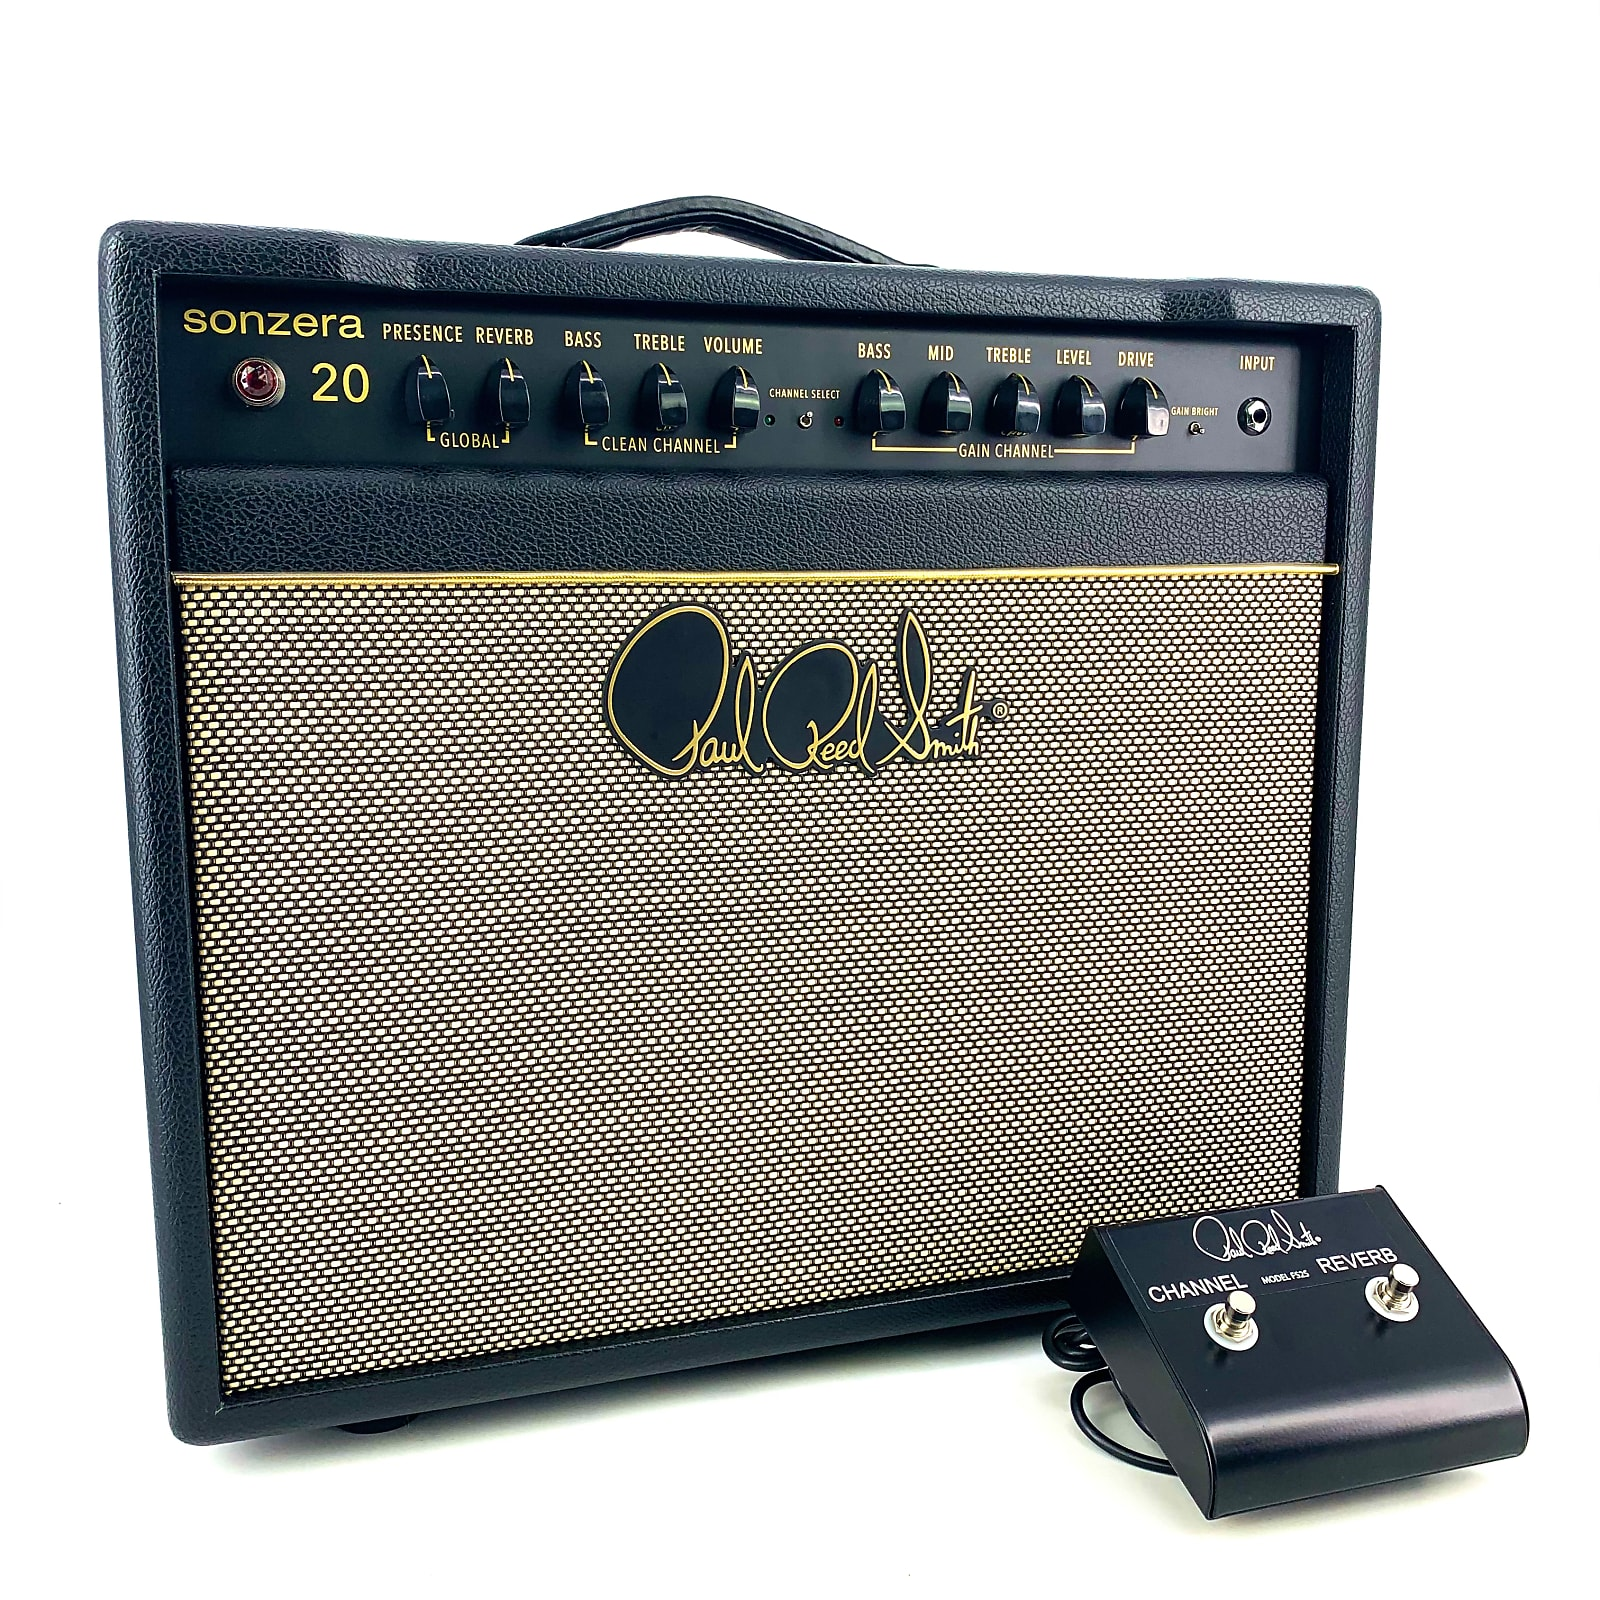 PRS Sonzera 20 Tube Combo Amplifier